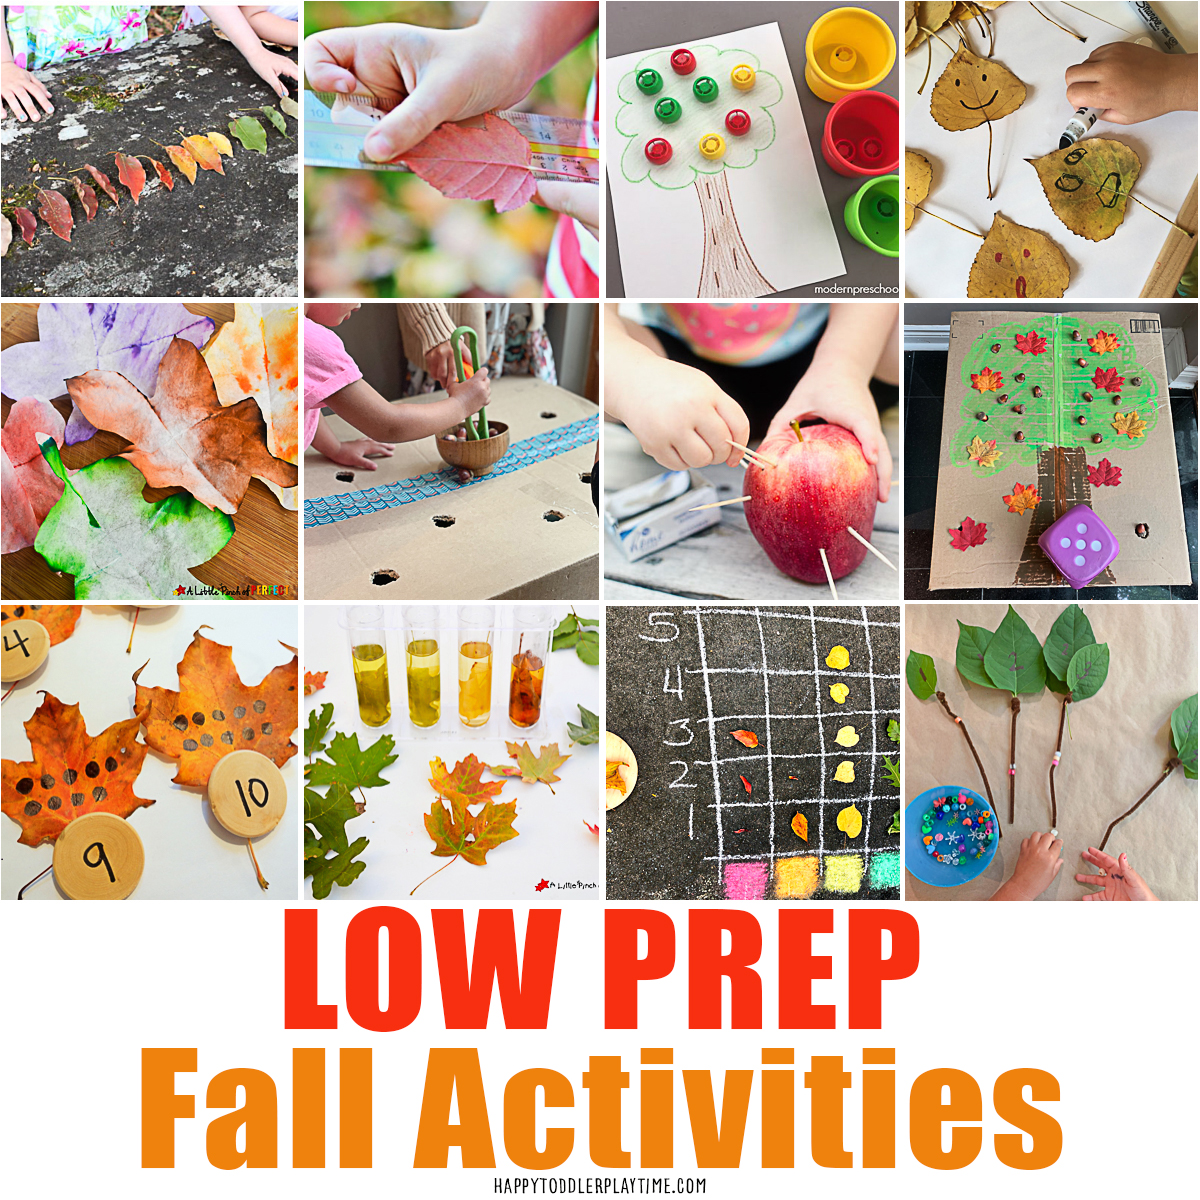 Low Prep Fall Activities For Kids - HAPPY TODDLER PLAYTIME